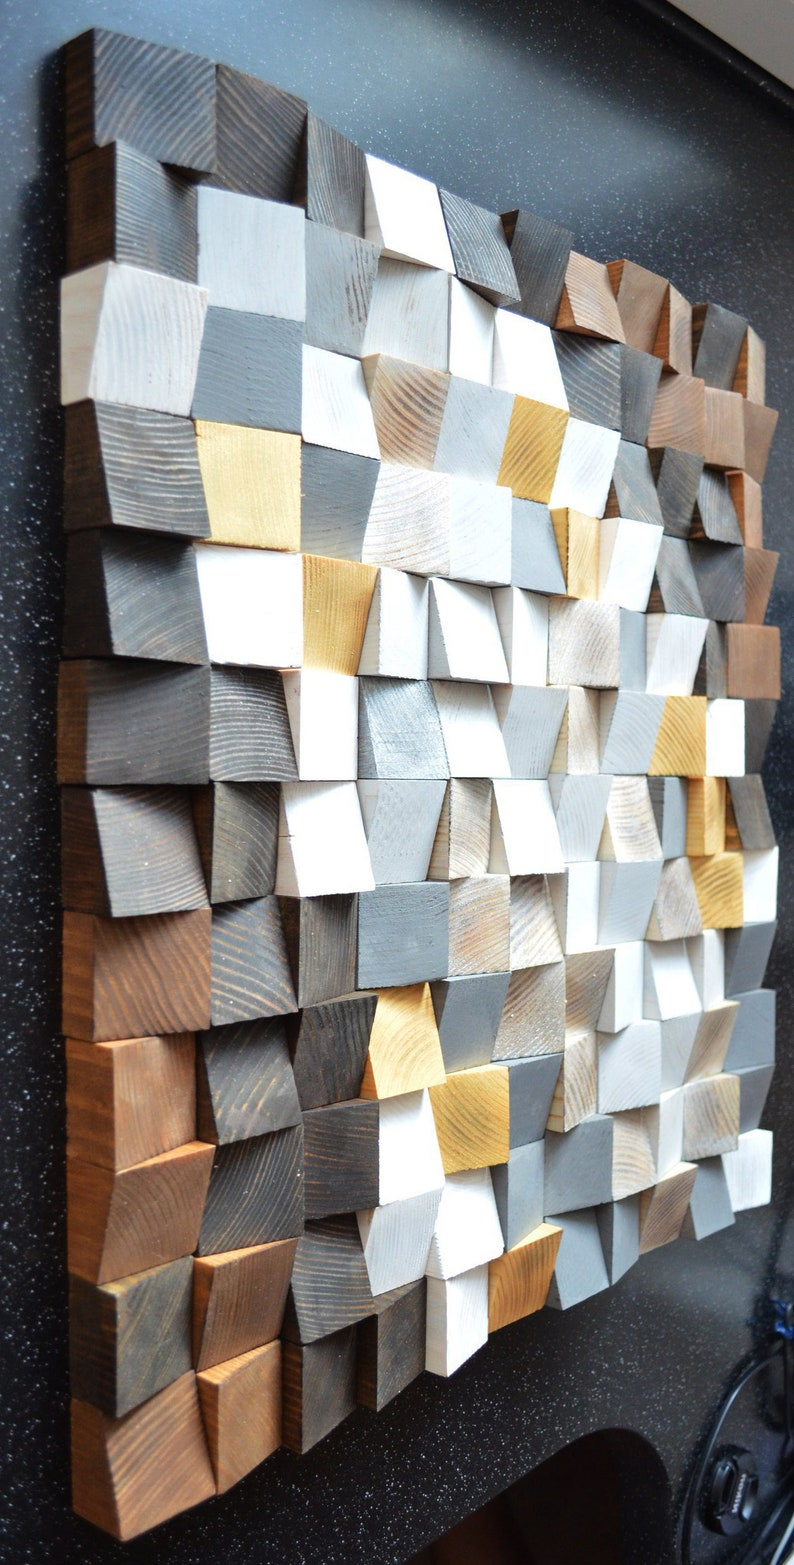 Geometric Wood Wall Art Reclaimed Wood Art Mosaic Wood Art Geometric Wall Art Rustic Wood Art Wooden Art Wooden Panel